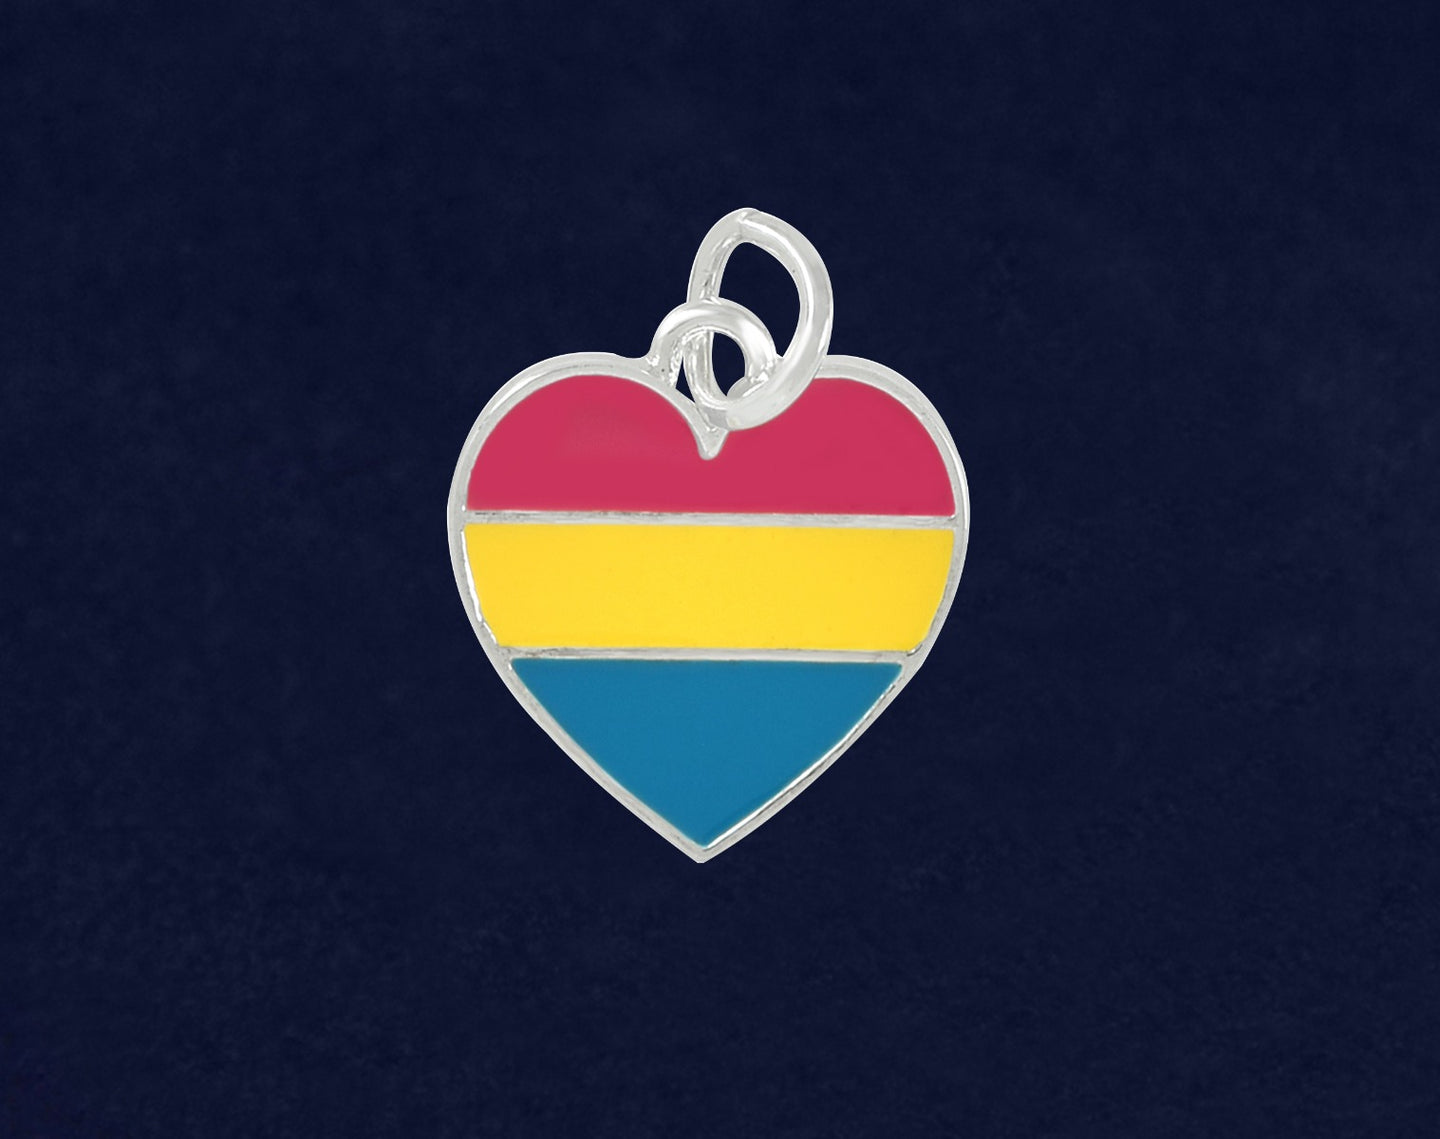 Pansexual LGBTQ Pride Heart Charms - Fundraising For A Cause